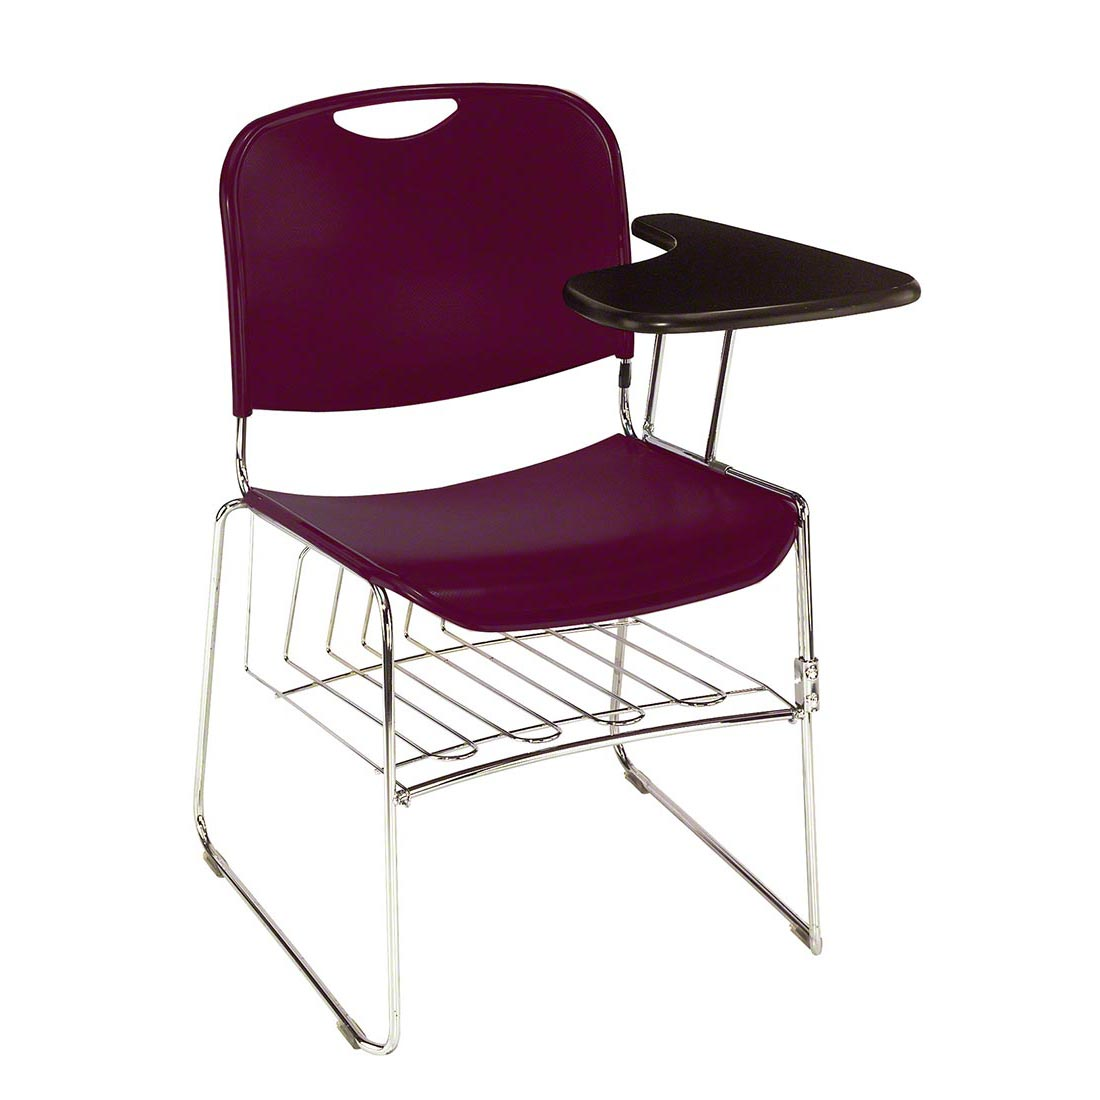 public seating chairs wishbone overstock national 8500 series book basket for stack